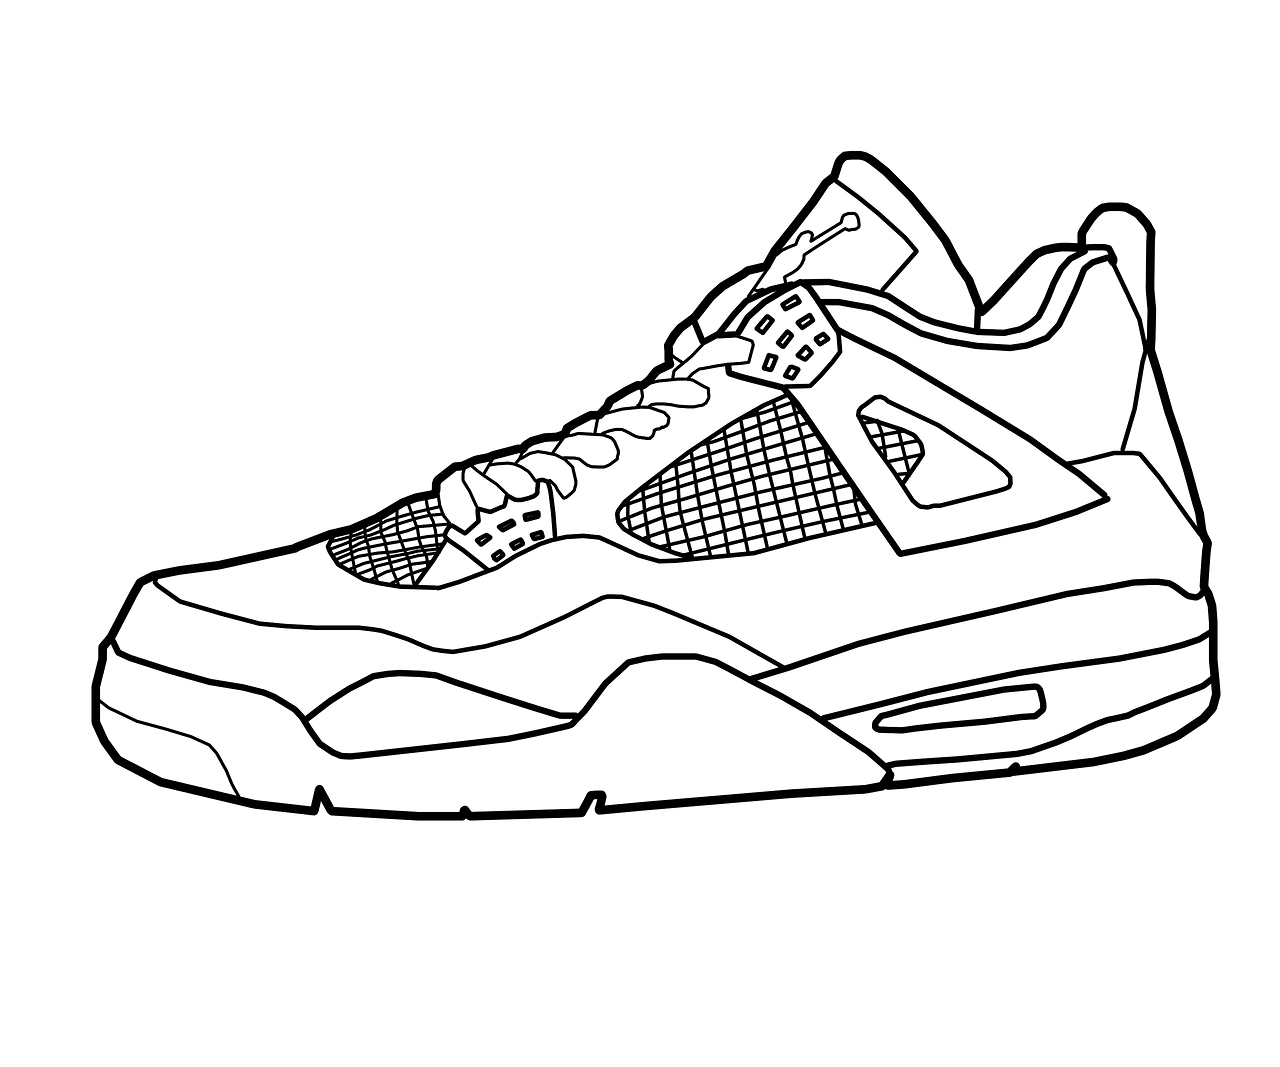 Coloring Football Shoe Coloring Pages